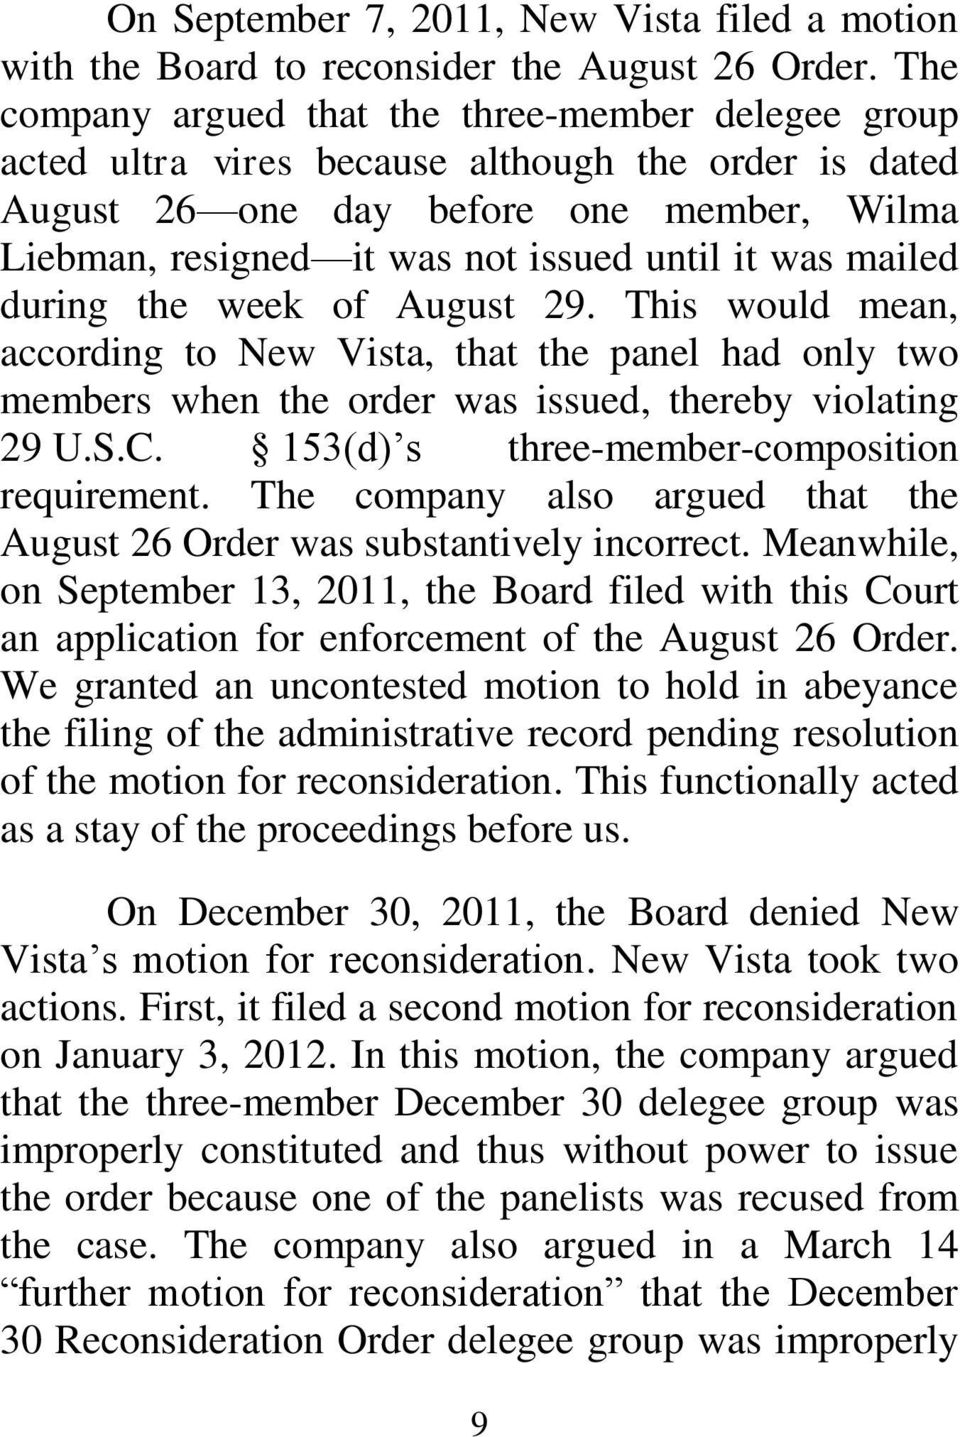 was mailed during the week of August 29. This would mean, according to New Vista, that the panel had only two members when the order was issued, thereby violating 29 U.S.C.